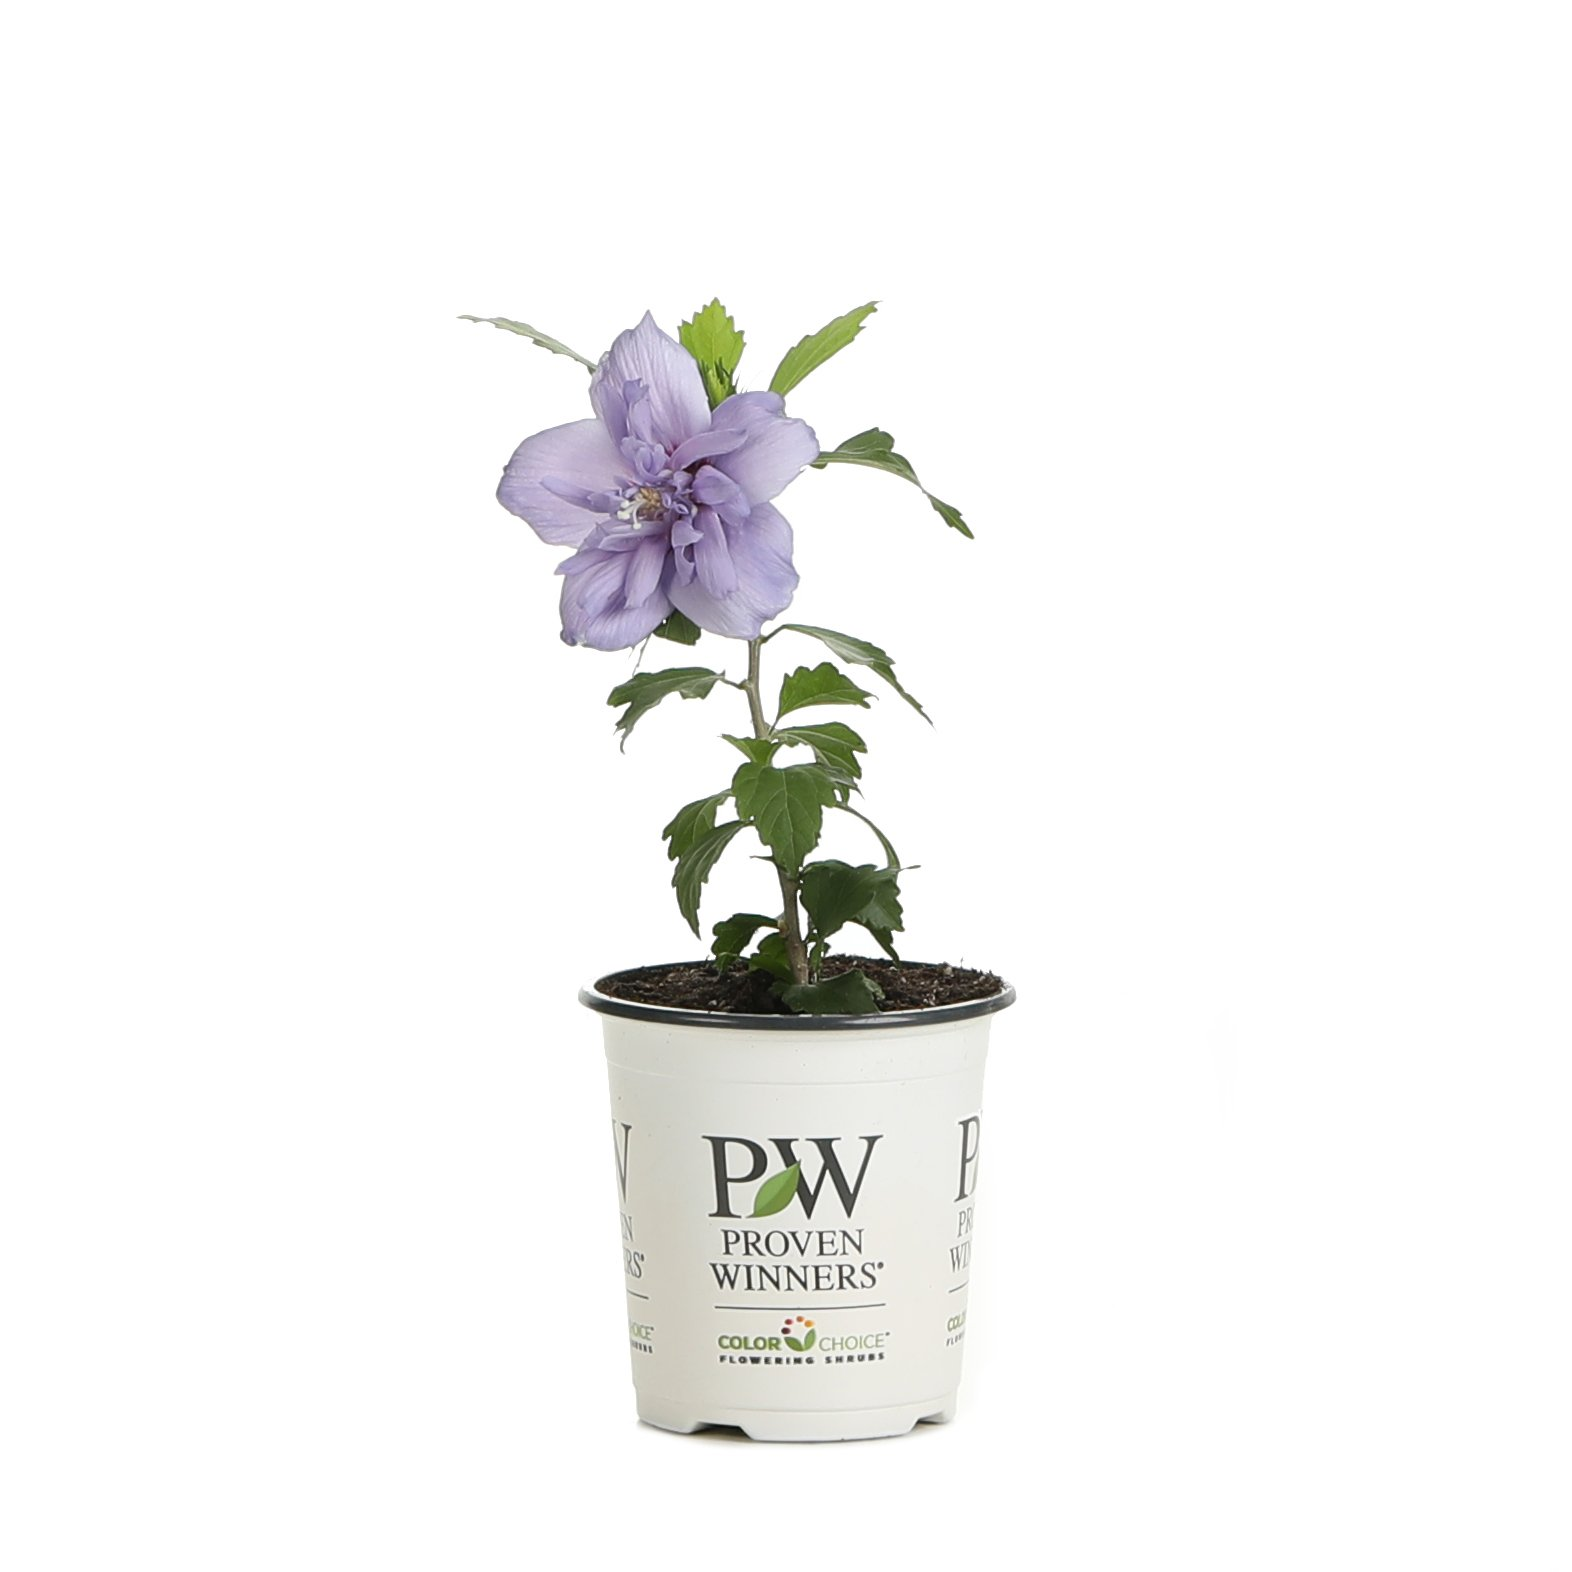 Blue Chiffon Rose of Sharon (Hibiscus) Live Shrub, Blue Flowers, 4.5 in. Quart by Proven Winners